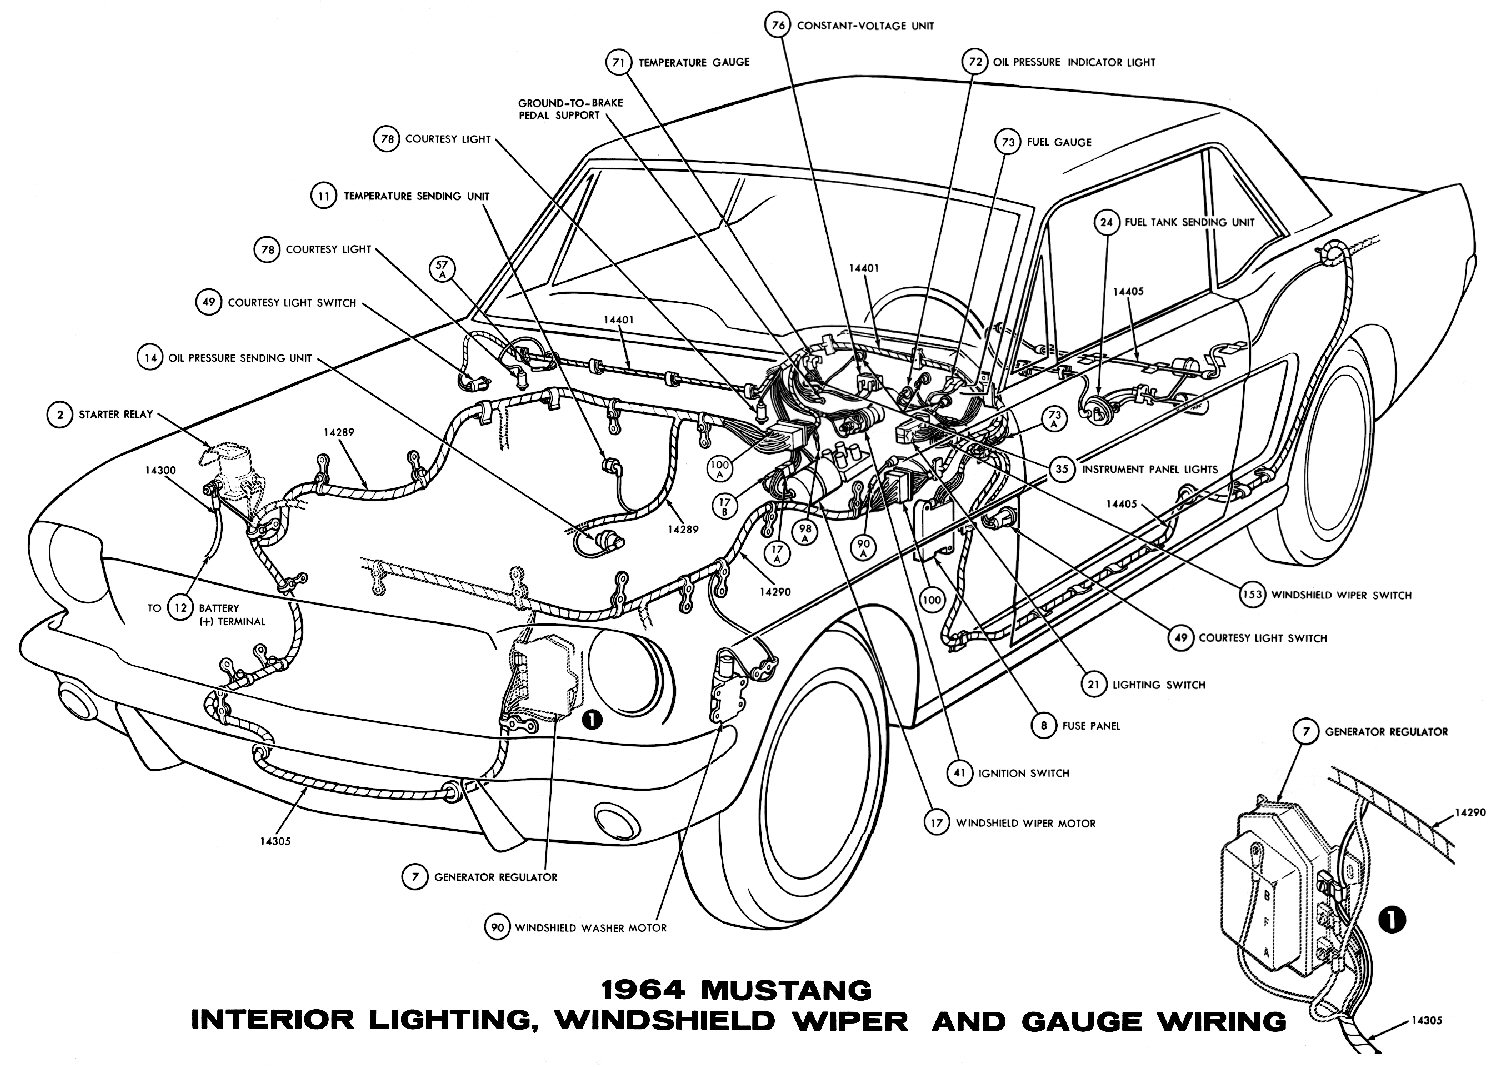 1964 Mustang Wiring Diagrams Average Joe Restoration Tail Light Diagram Interior Lights Windshield Wiper And Gauges Pictorial Or Schematic